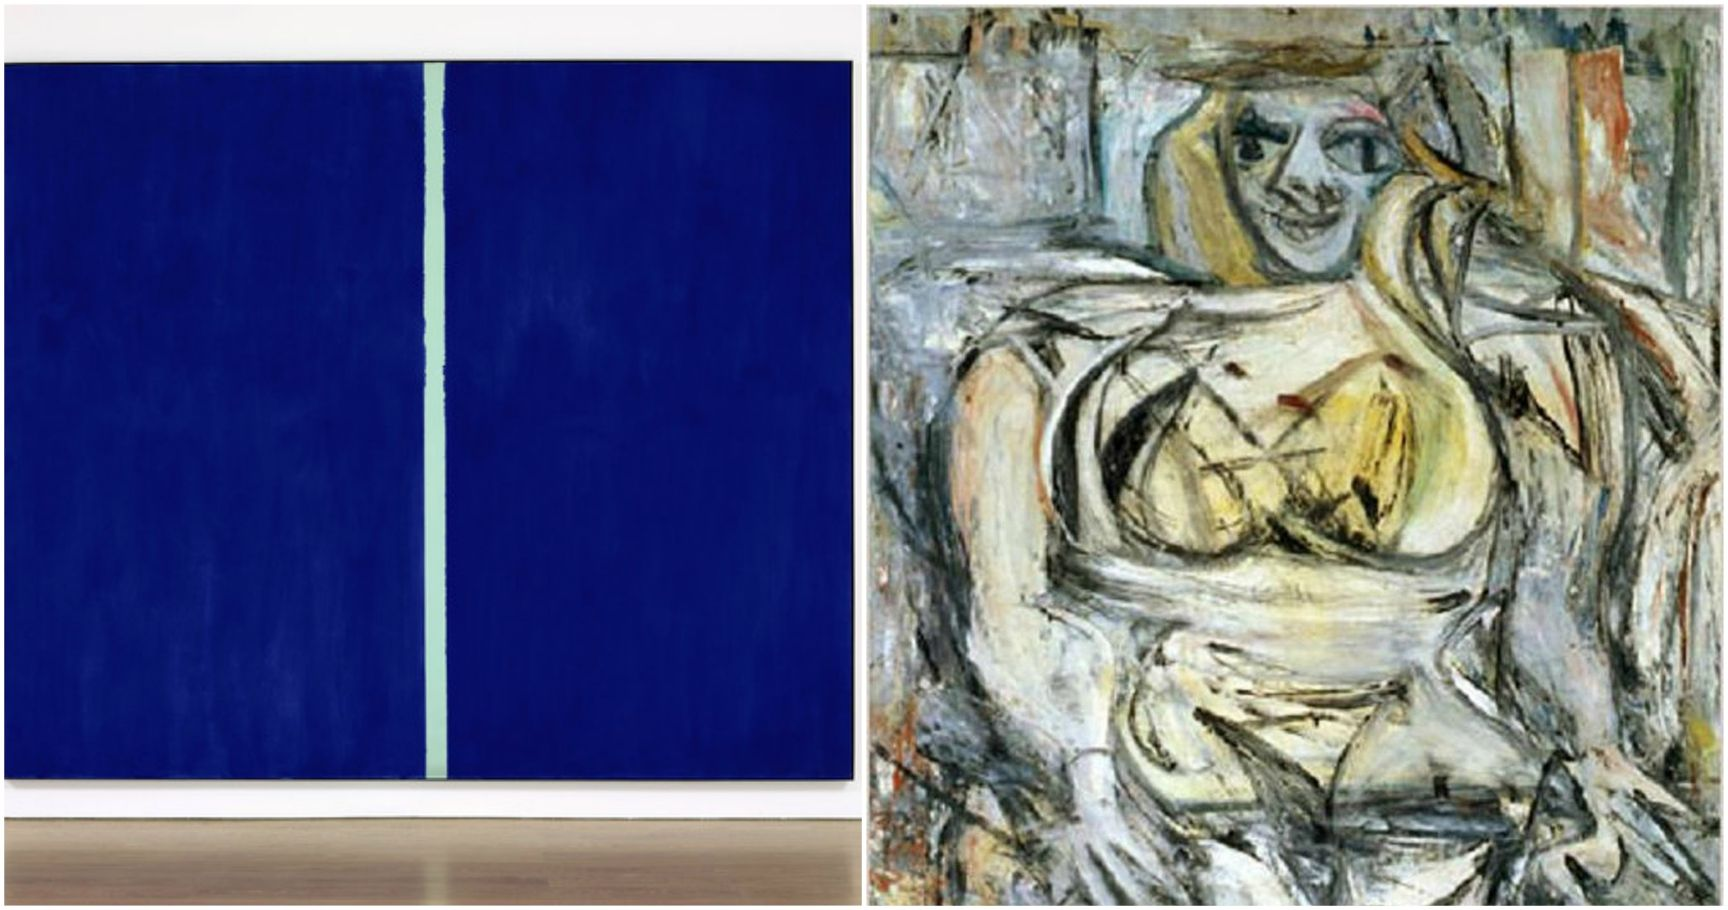 10 Ugly Pieces Of Art You Won't Believe Sold For Millions